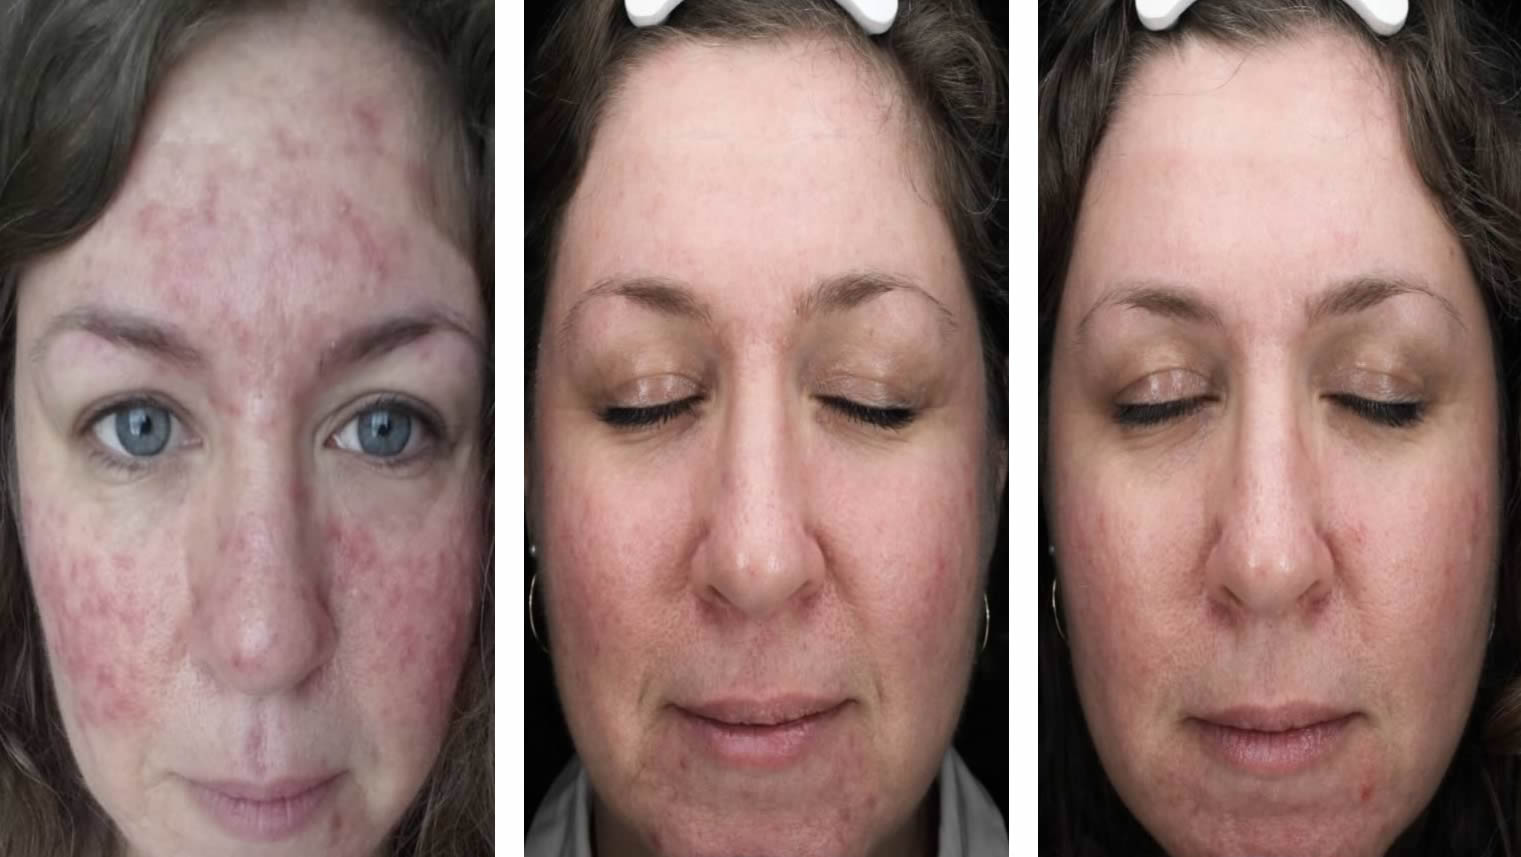 TIXEL treatment for rosacea Taunton